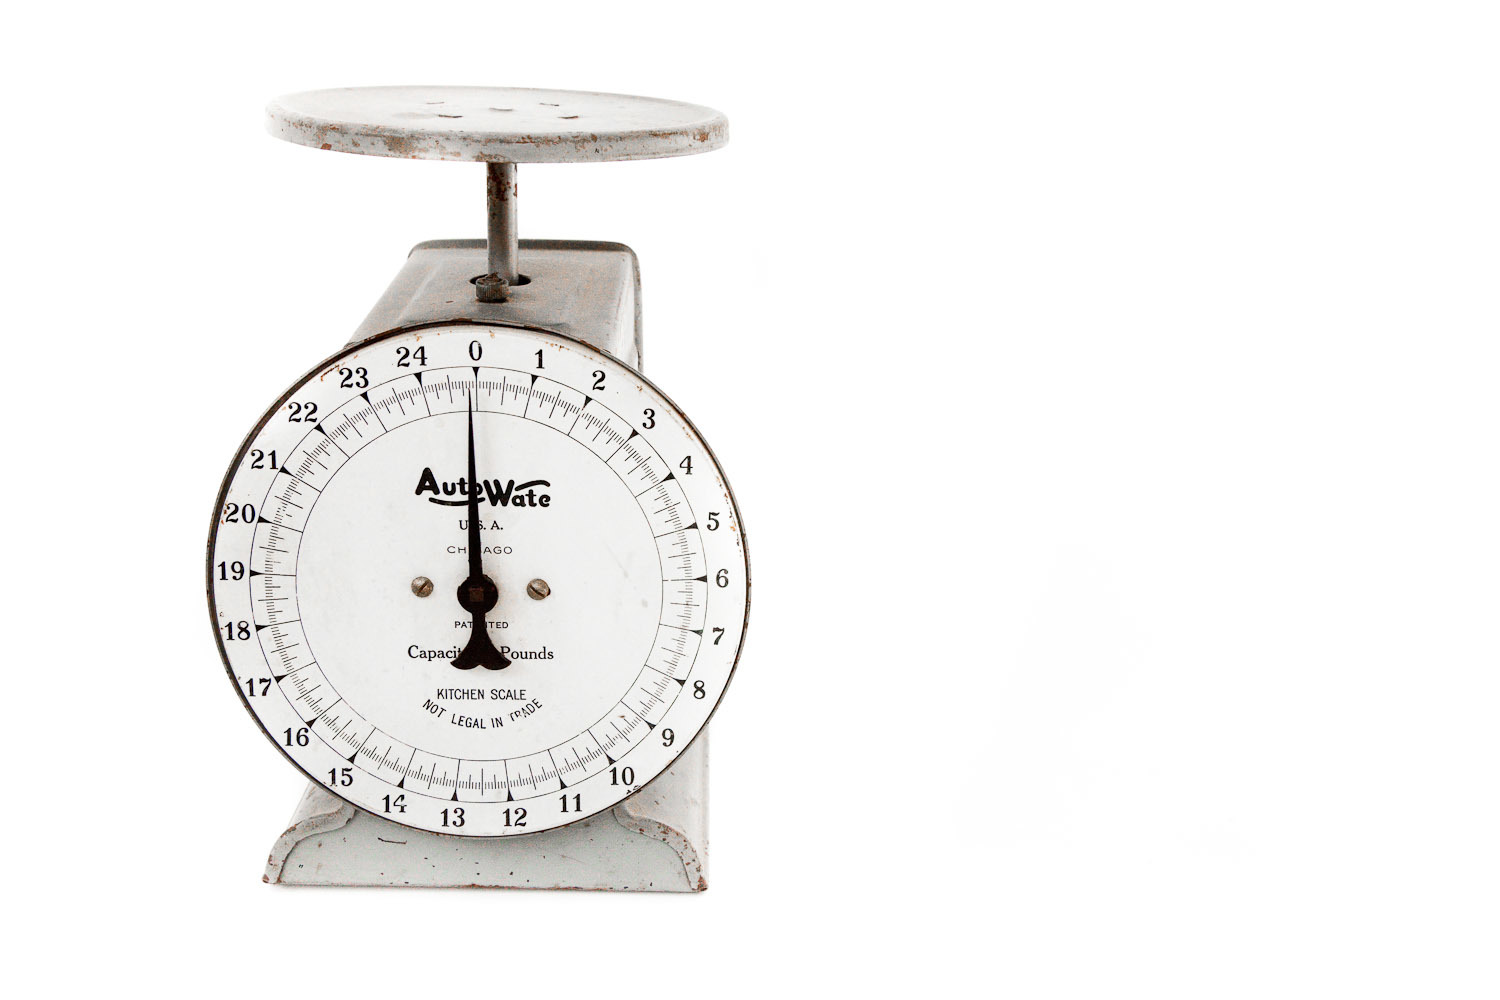 (PS-021) AUTOWATE KITCHEN SCALE